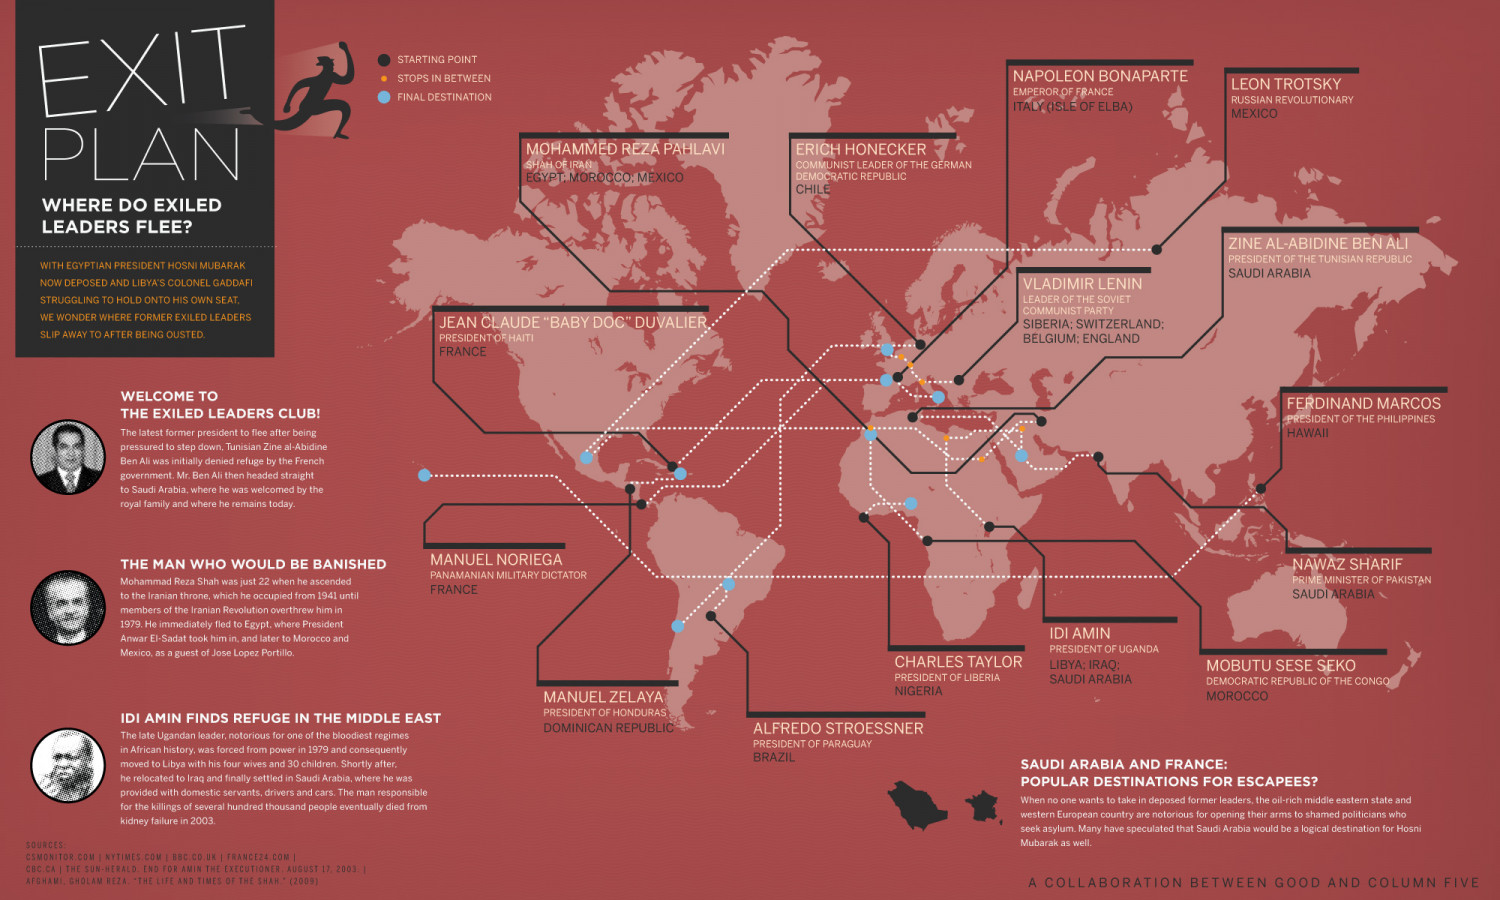 Exit Plan: Where Do Exiled Leaders Flee? Infographic